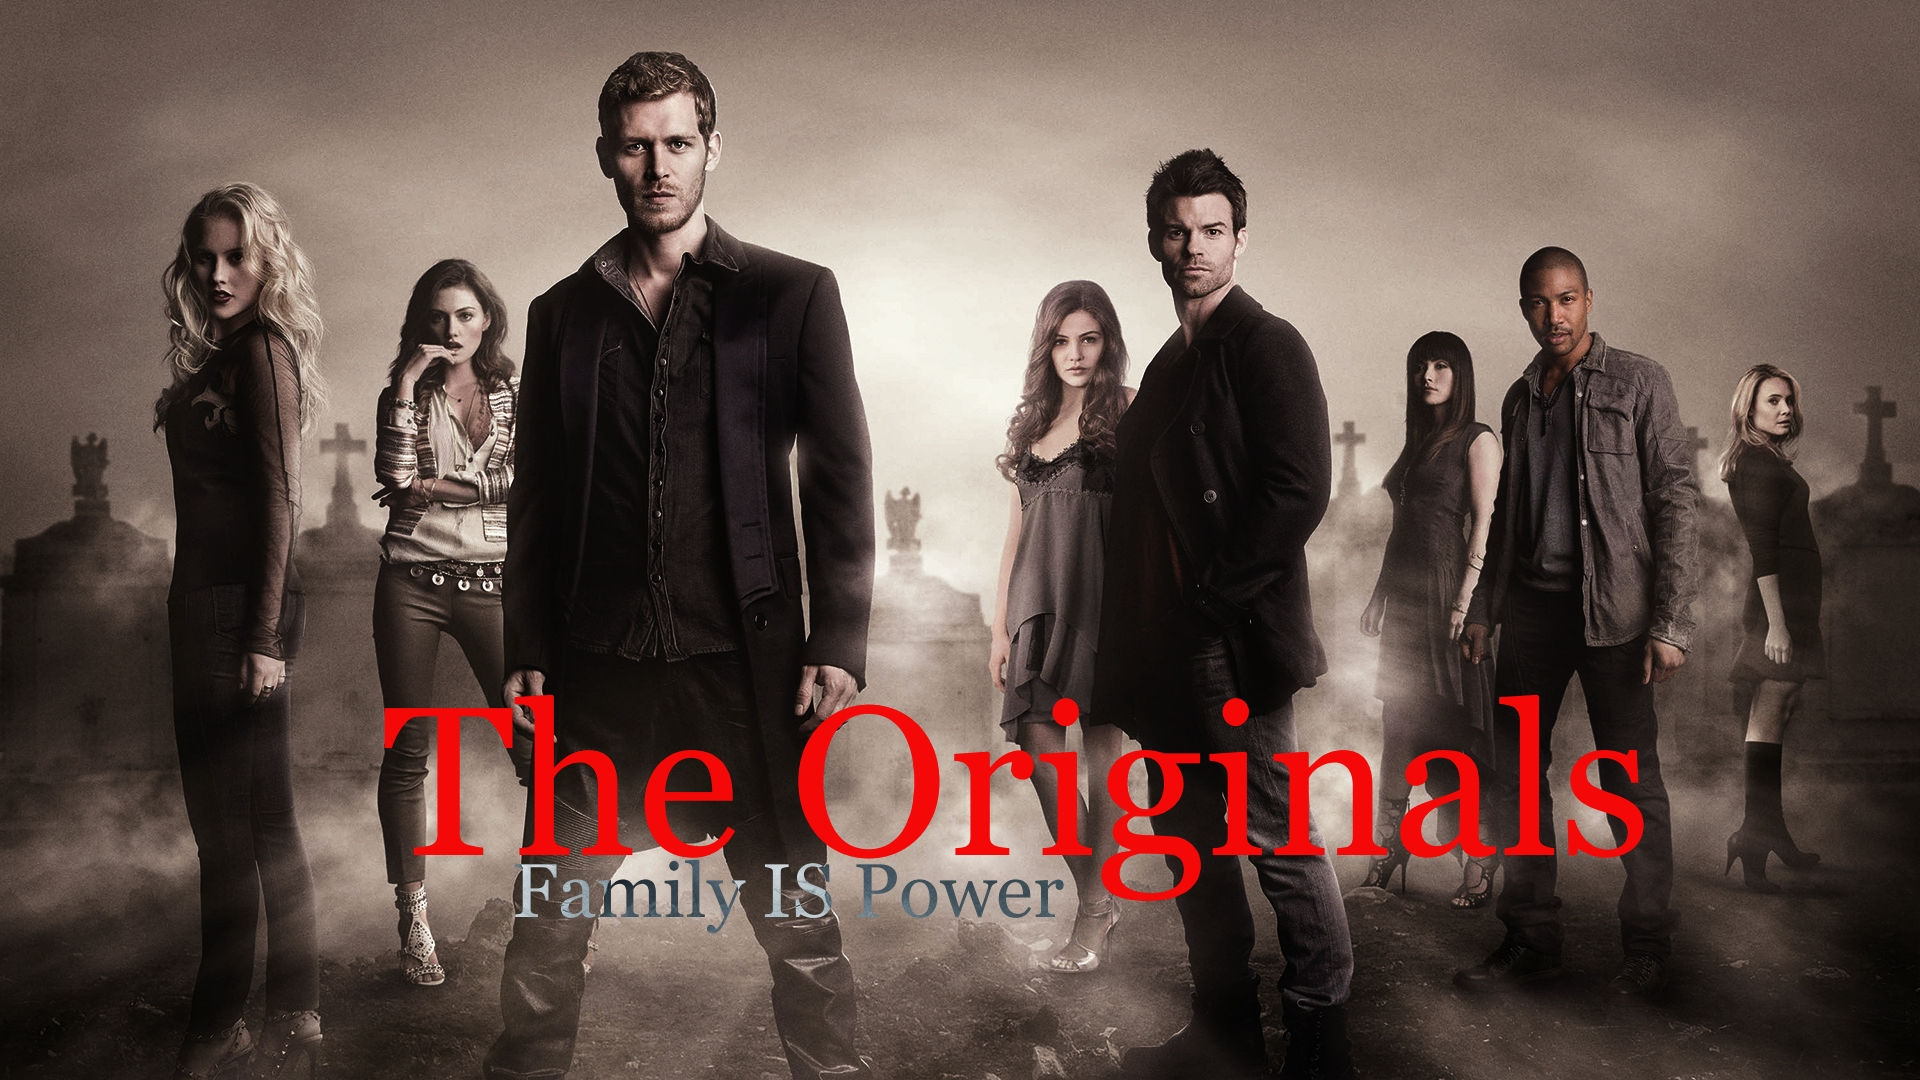 The originals hd wallpaper background image 1920x1080 id 658469 wallpaper abyss - Original wallpaper ...